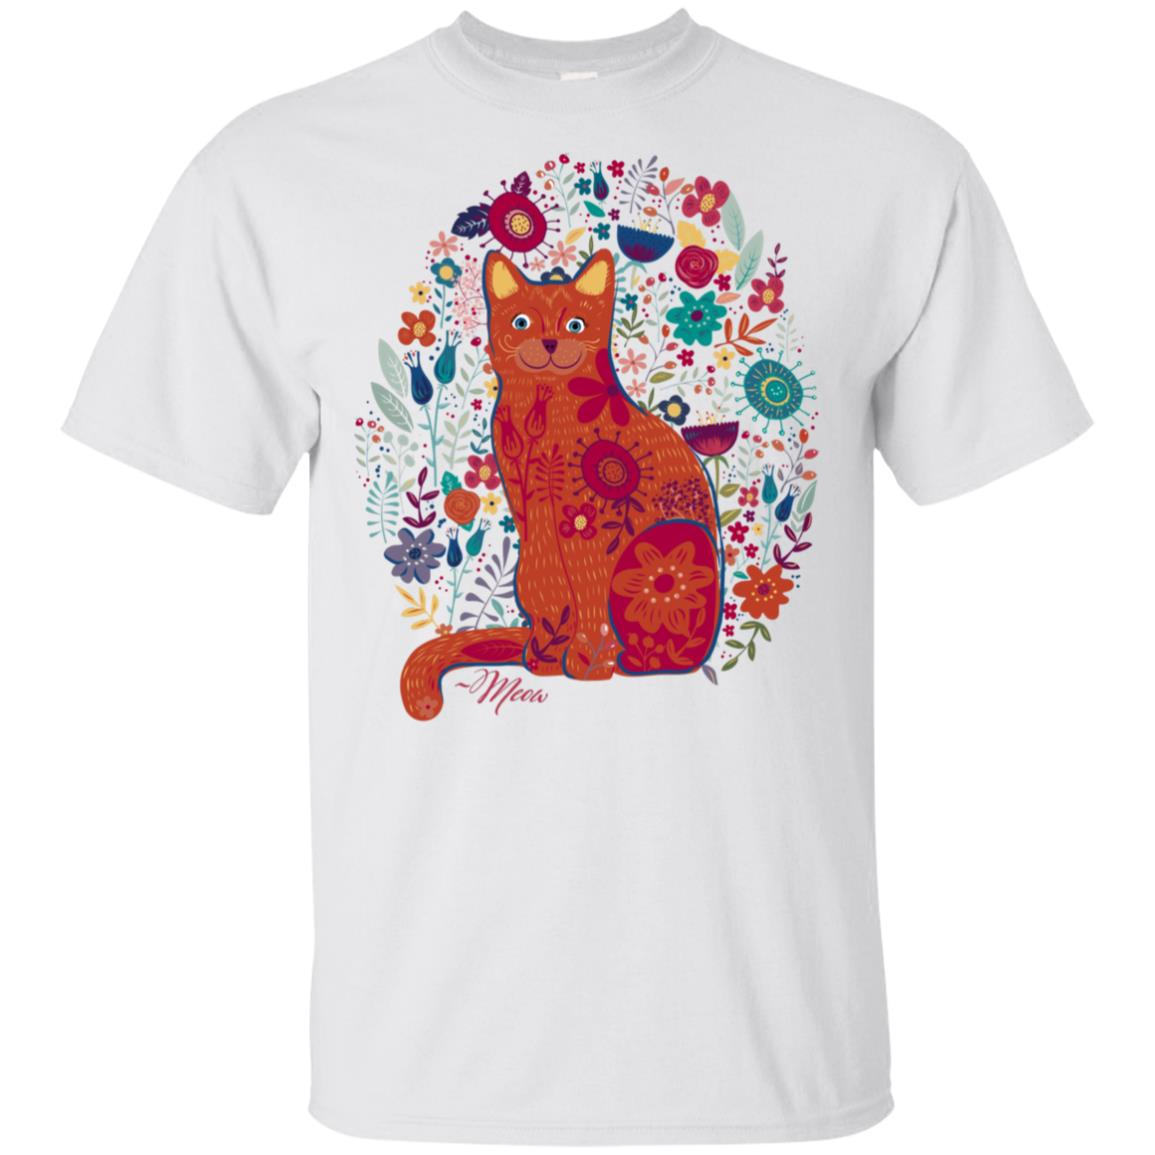 Meow, Cat for craft ladies who love folk art and craft Unisex Short Sleeve